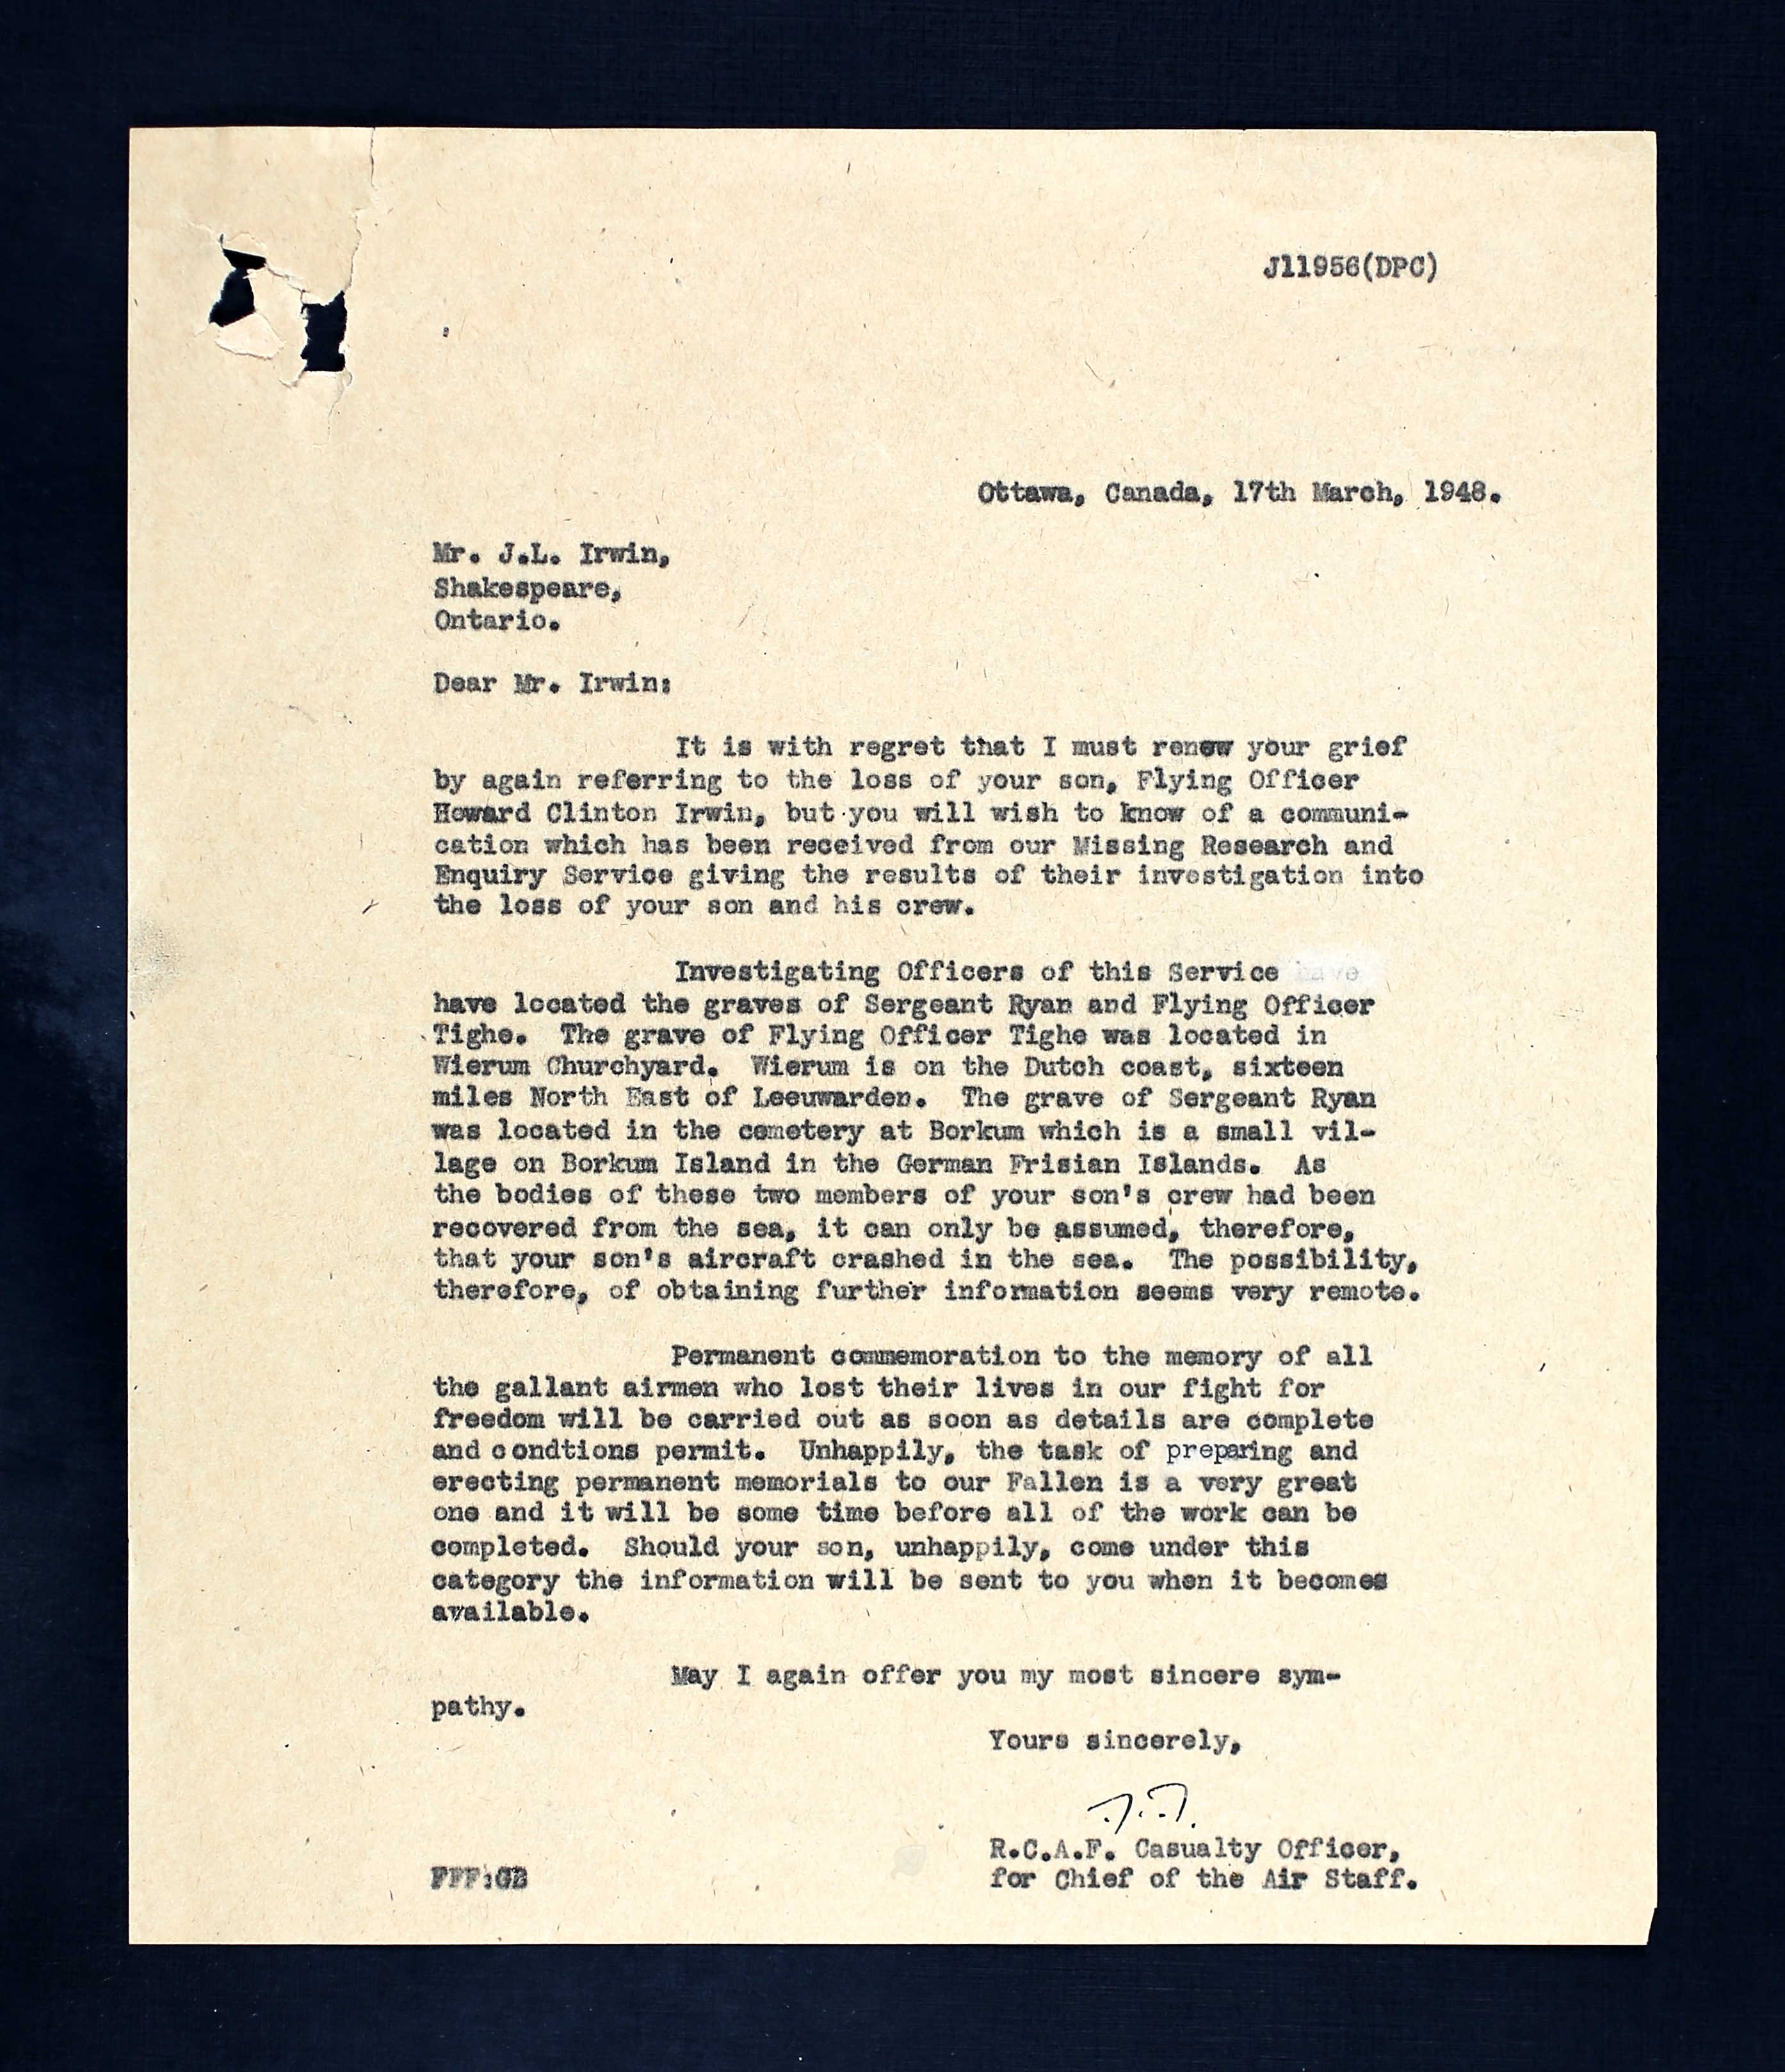 Letter– Letter to F/O Irwin's father from an RCAF Casualty Officer, dated 17 March 1948.  It conveys the result of a post-war investigation into the fate of F/O Irwin as a missing member of the RCAF.